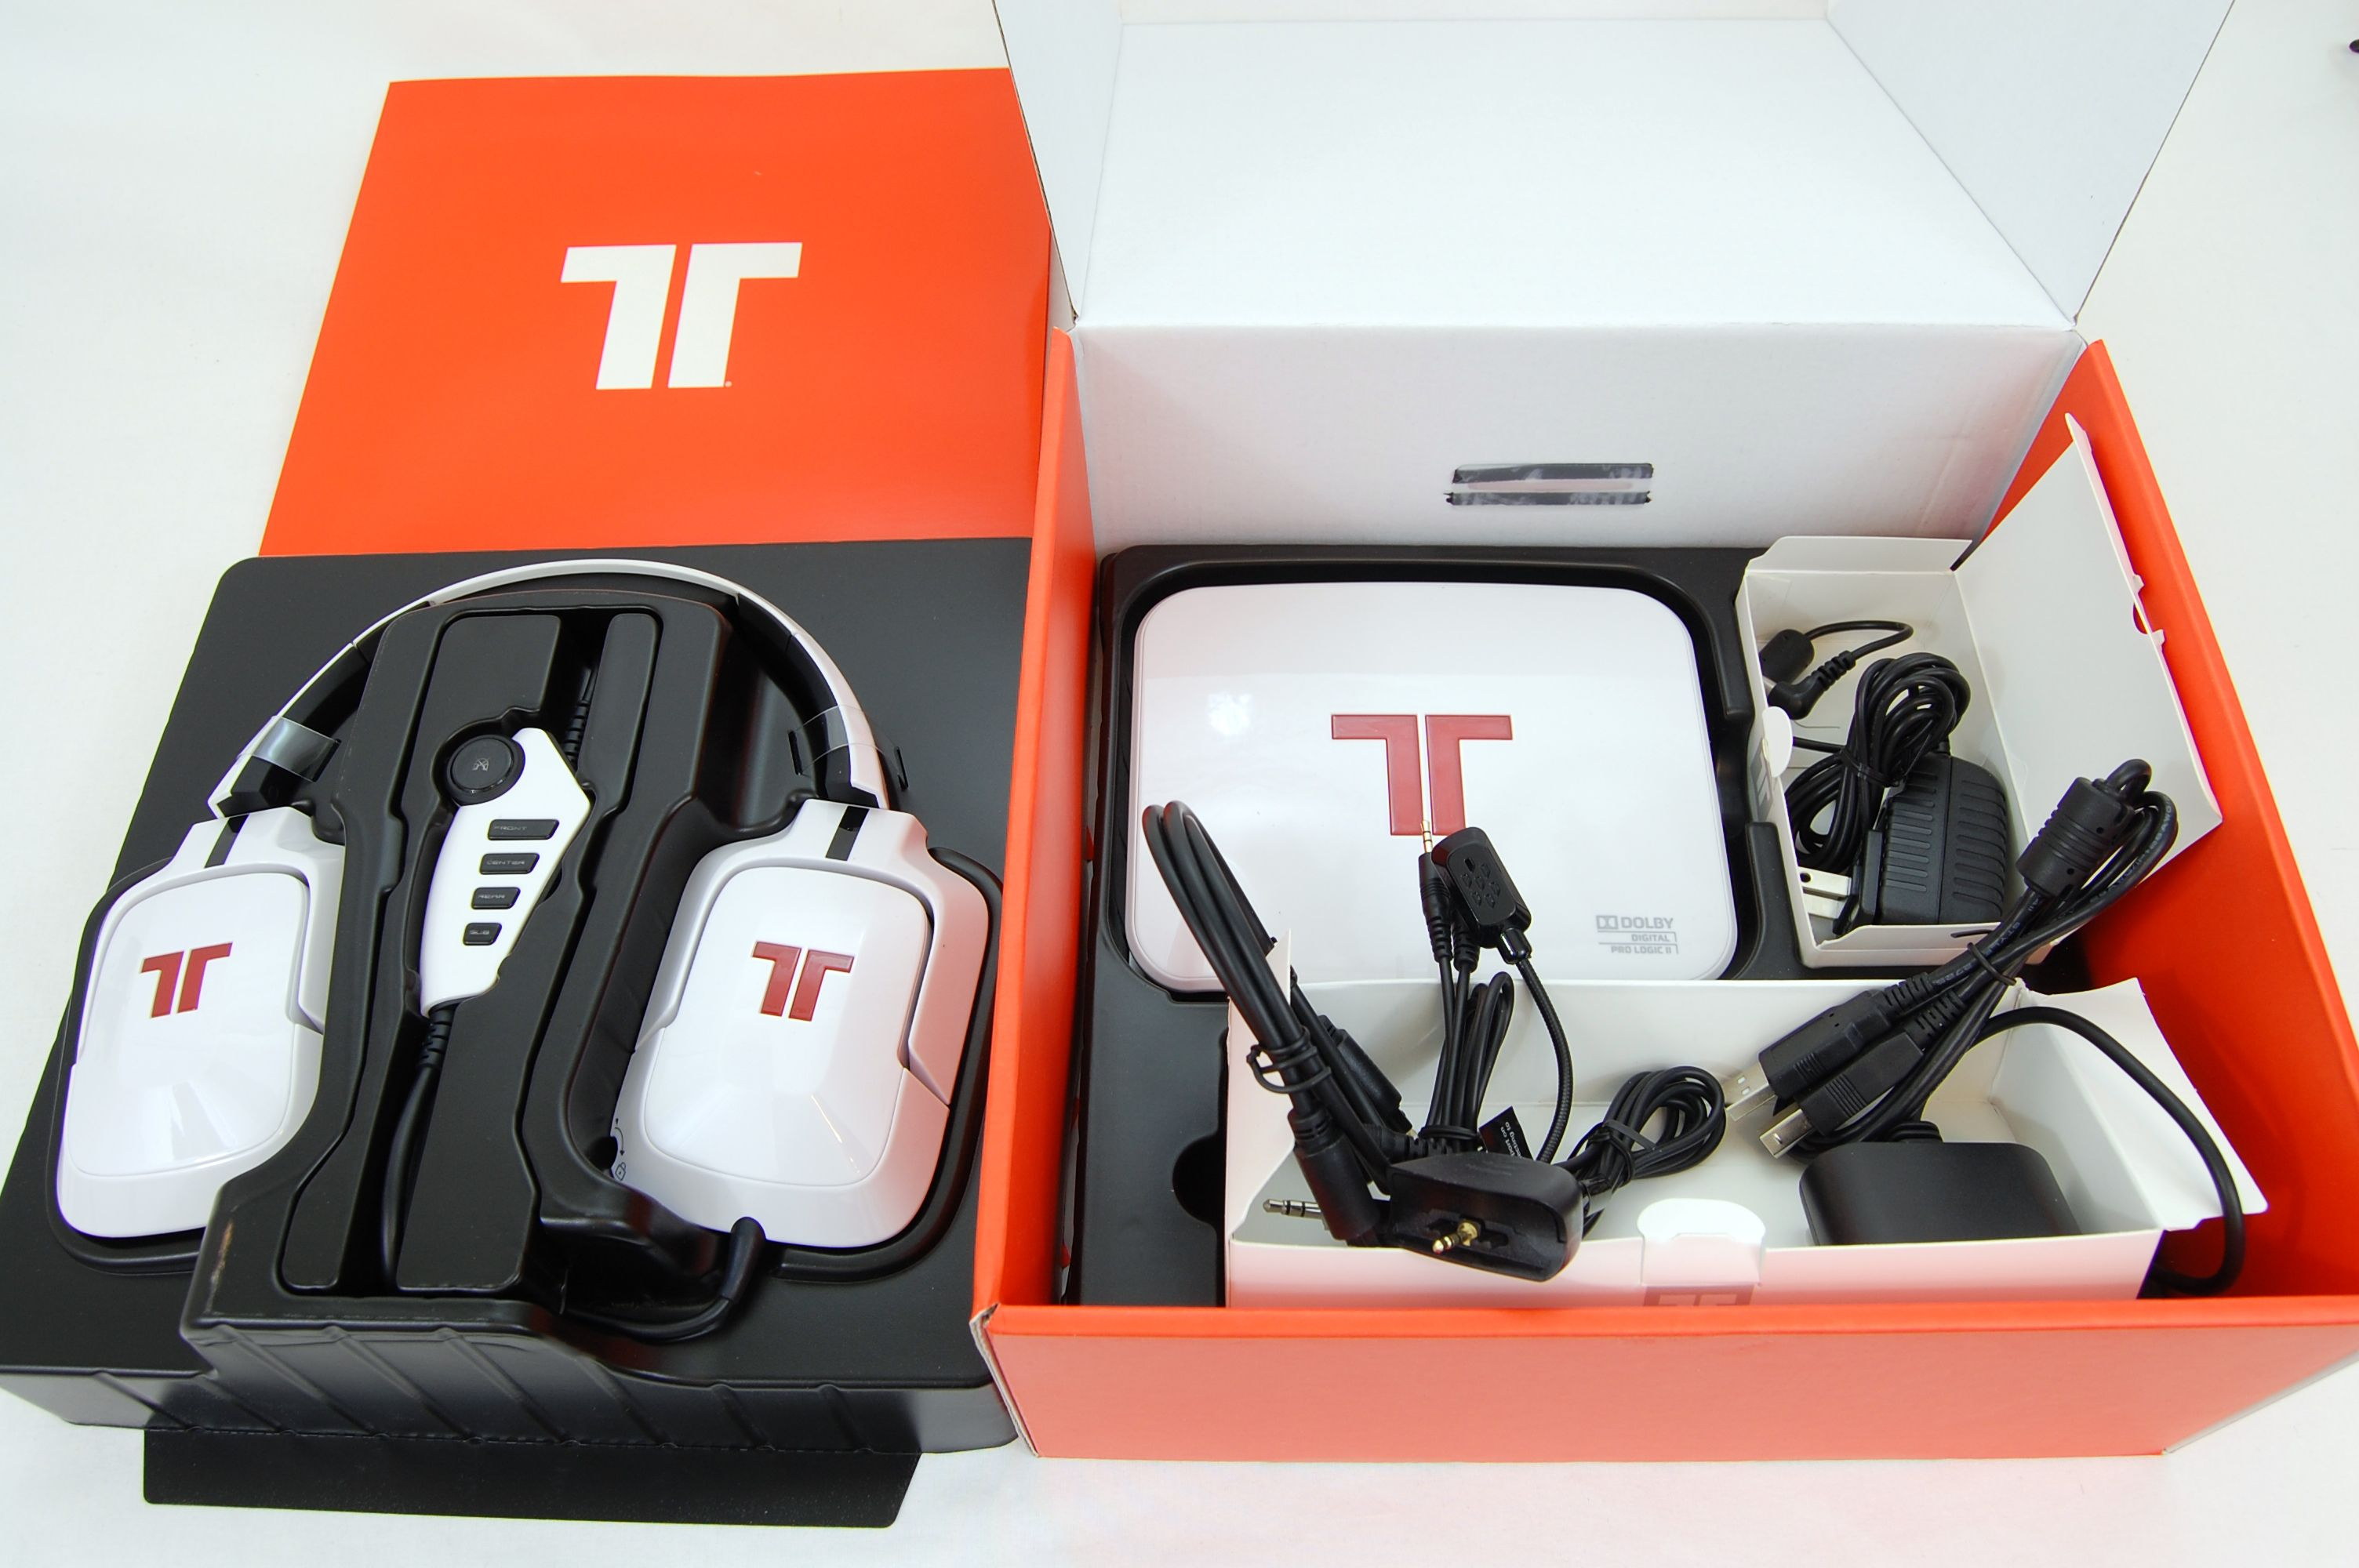 Tritton by MadCatz Pro+ 5.1 Surround Gaming Headset Review - Included Accessories